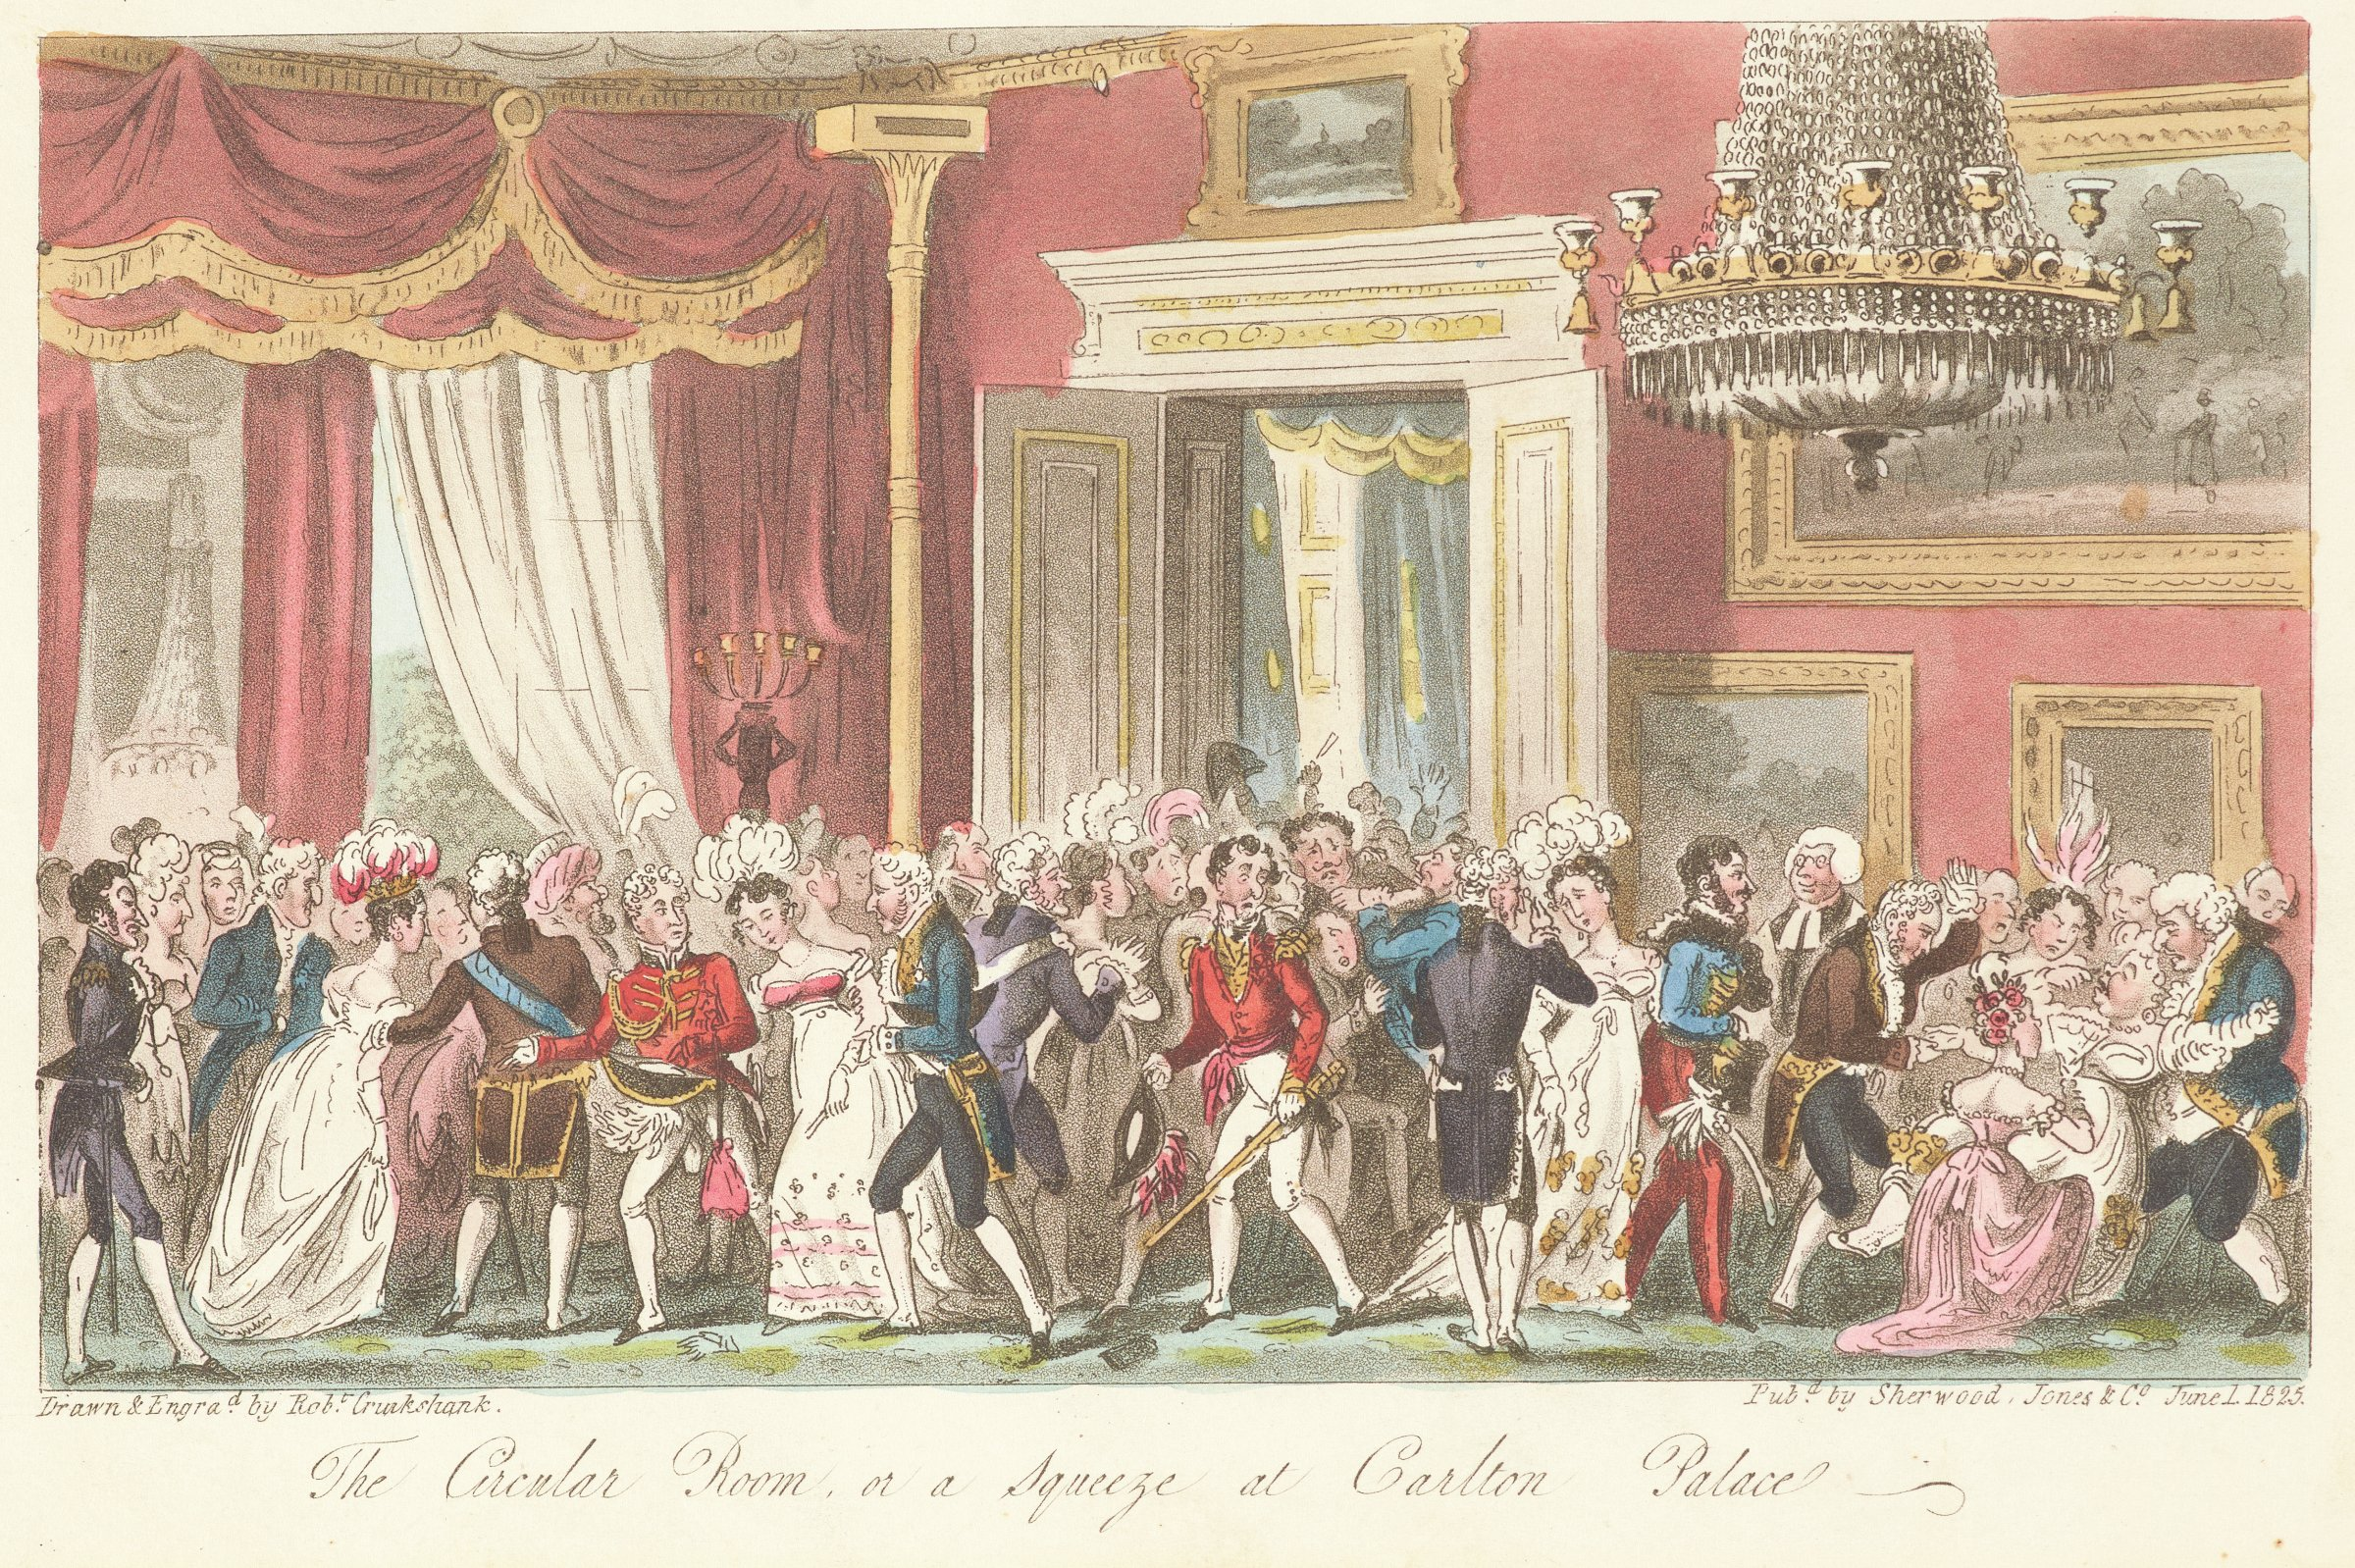 Scene of ladies and gentlemen at a ball in an elegant interior with a large chandelier hanging on the right. A woman faints on the right.